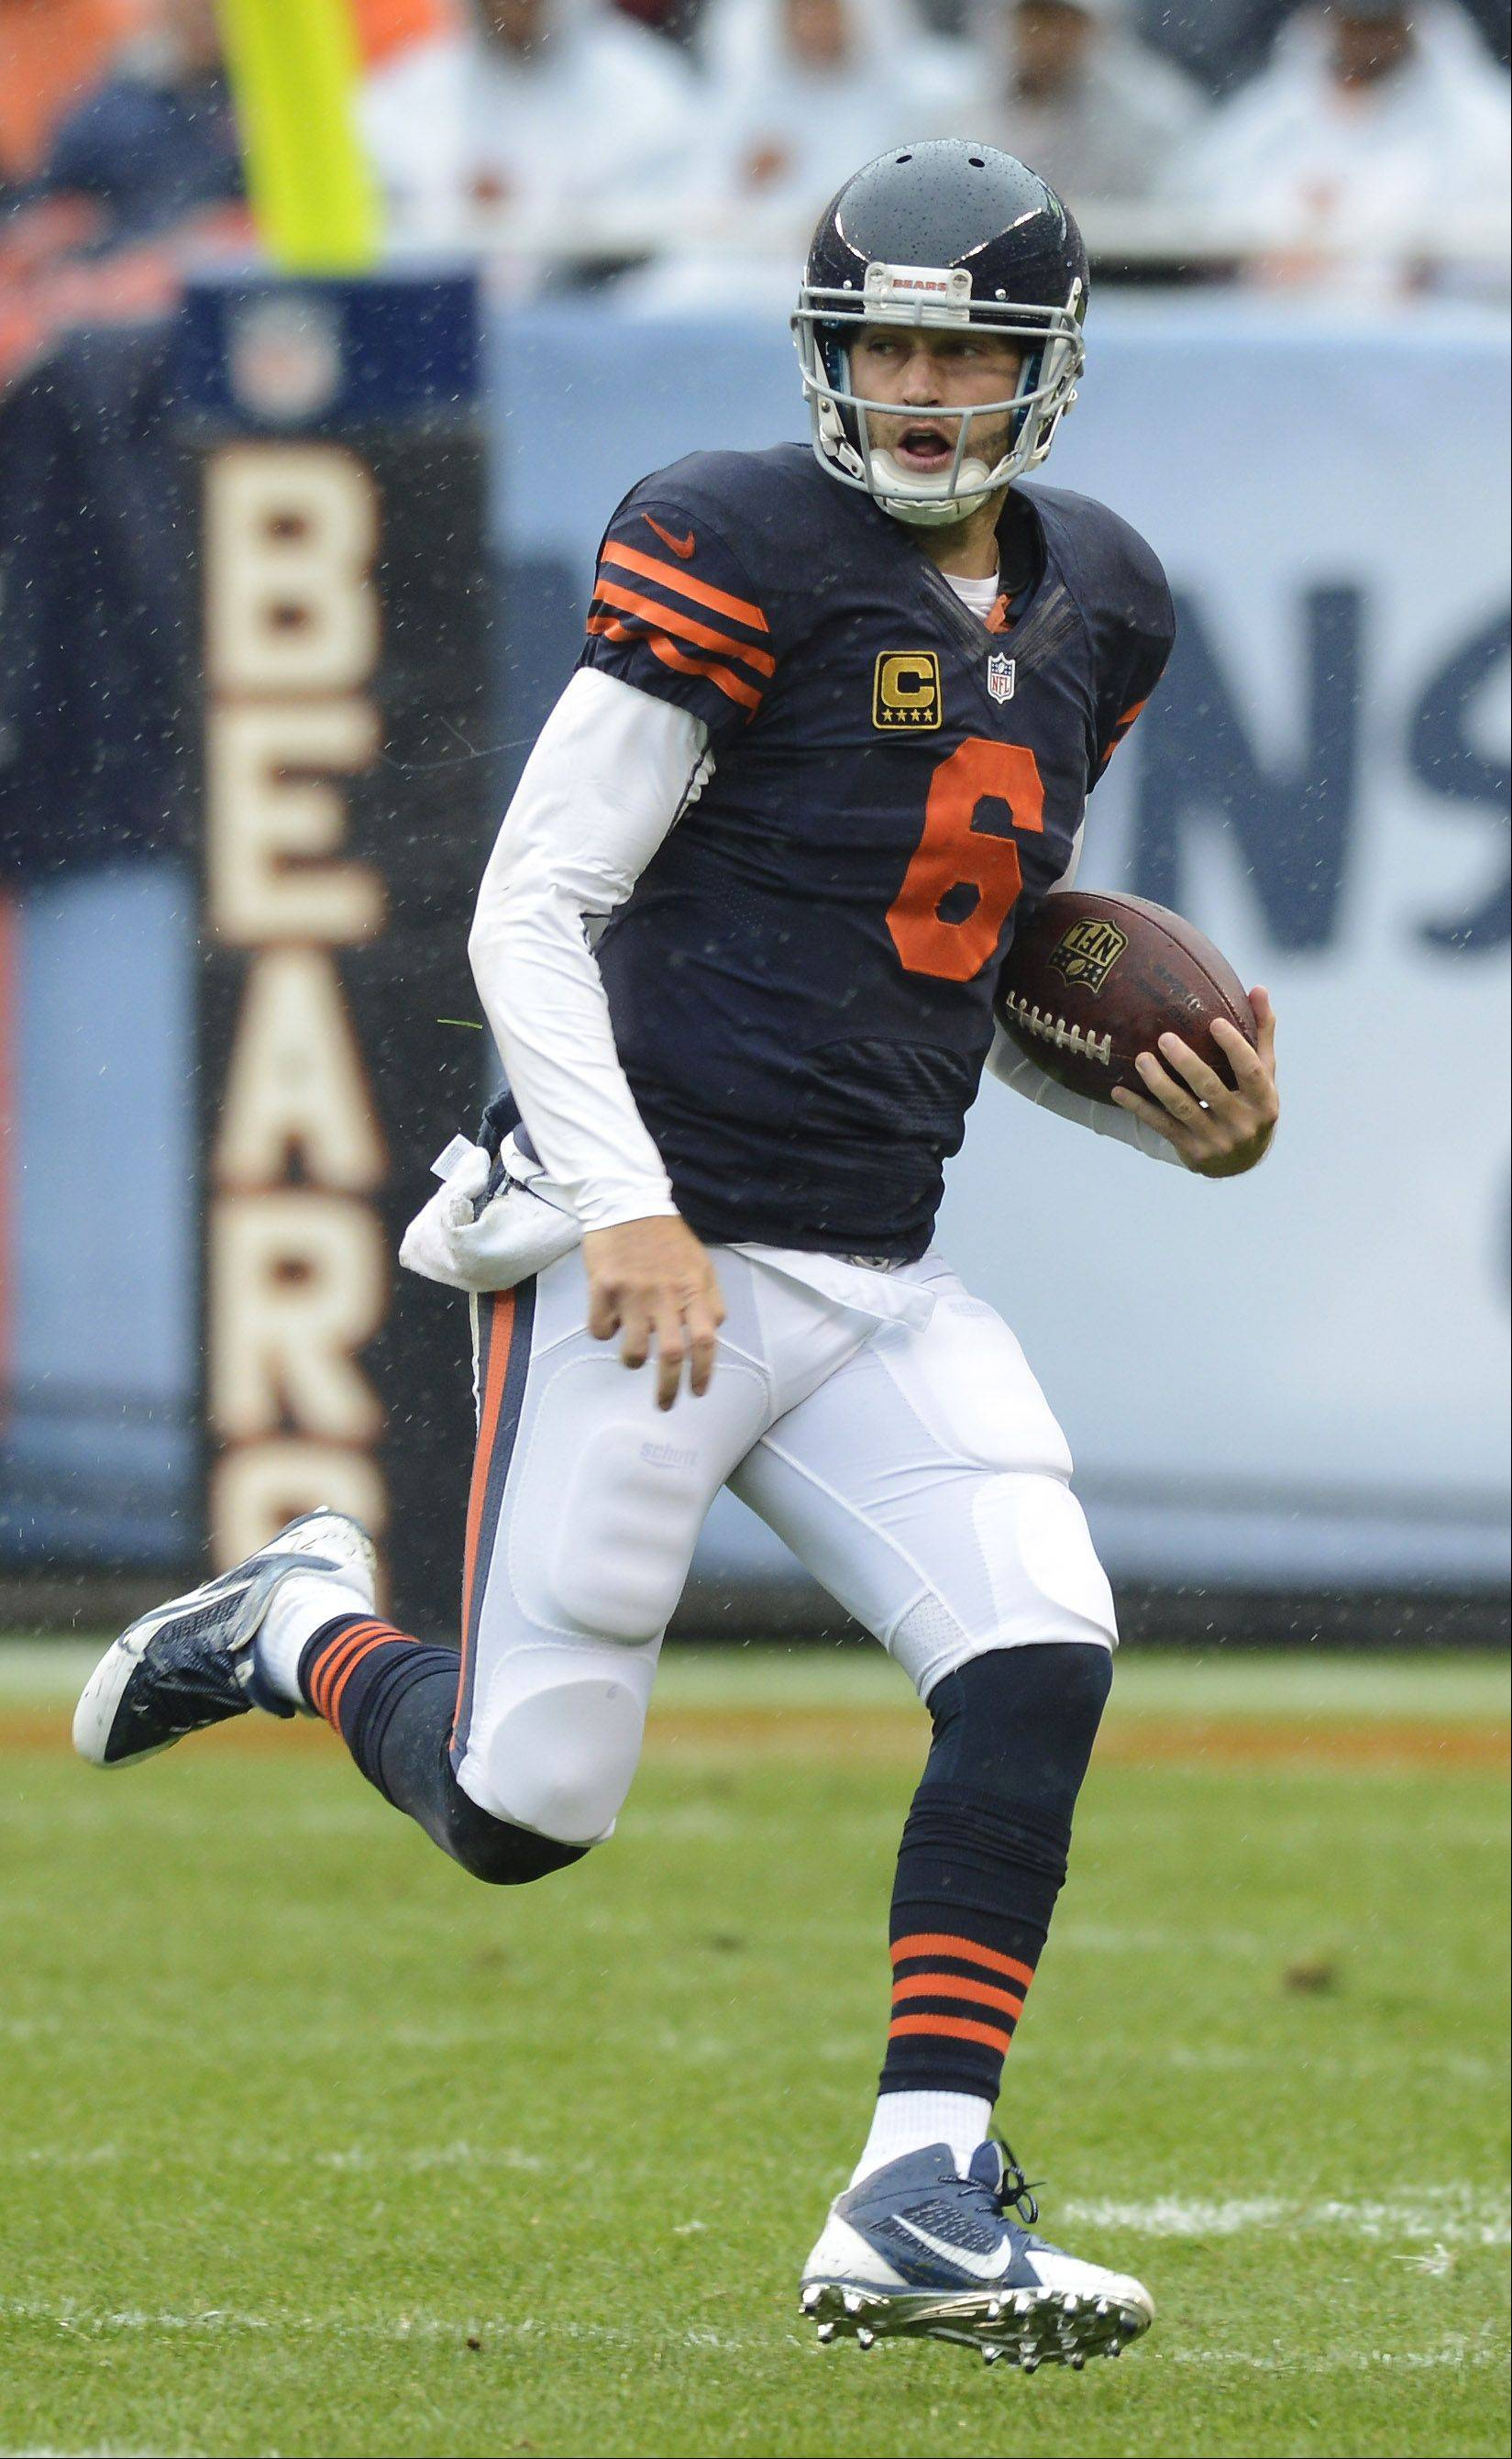 Chicago Bears quarterback Jay Cutler carries the ball during Sunday's game against the Minnesota Vikings at Soldier Field.